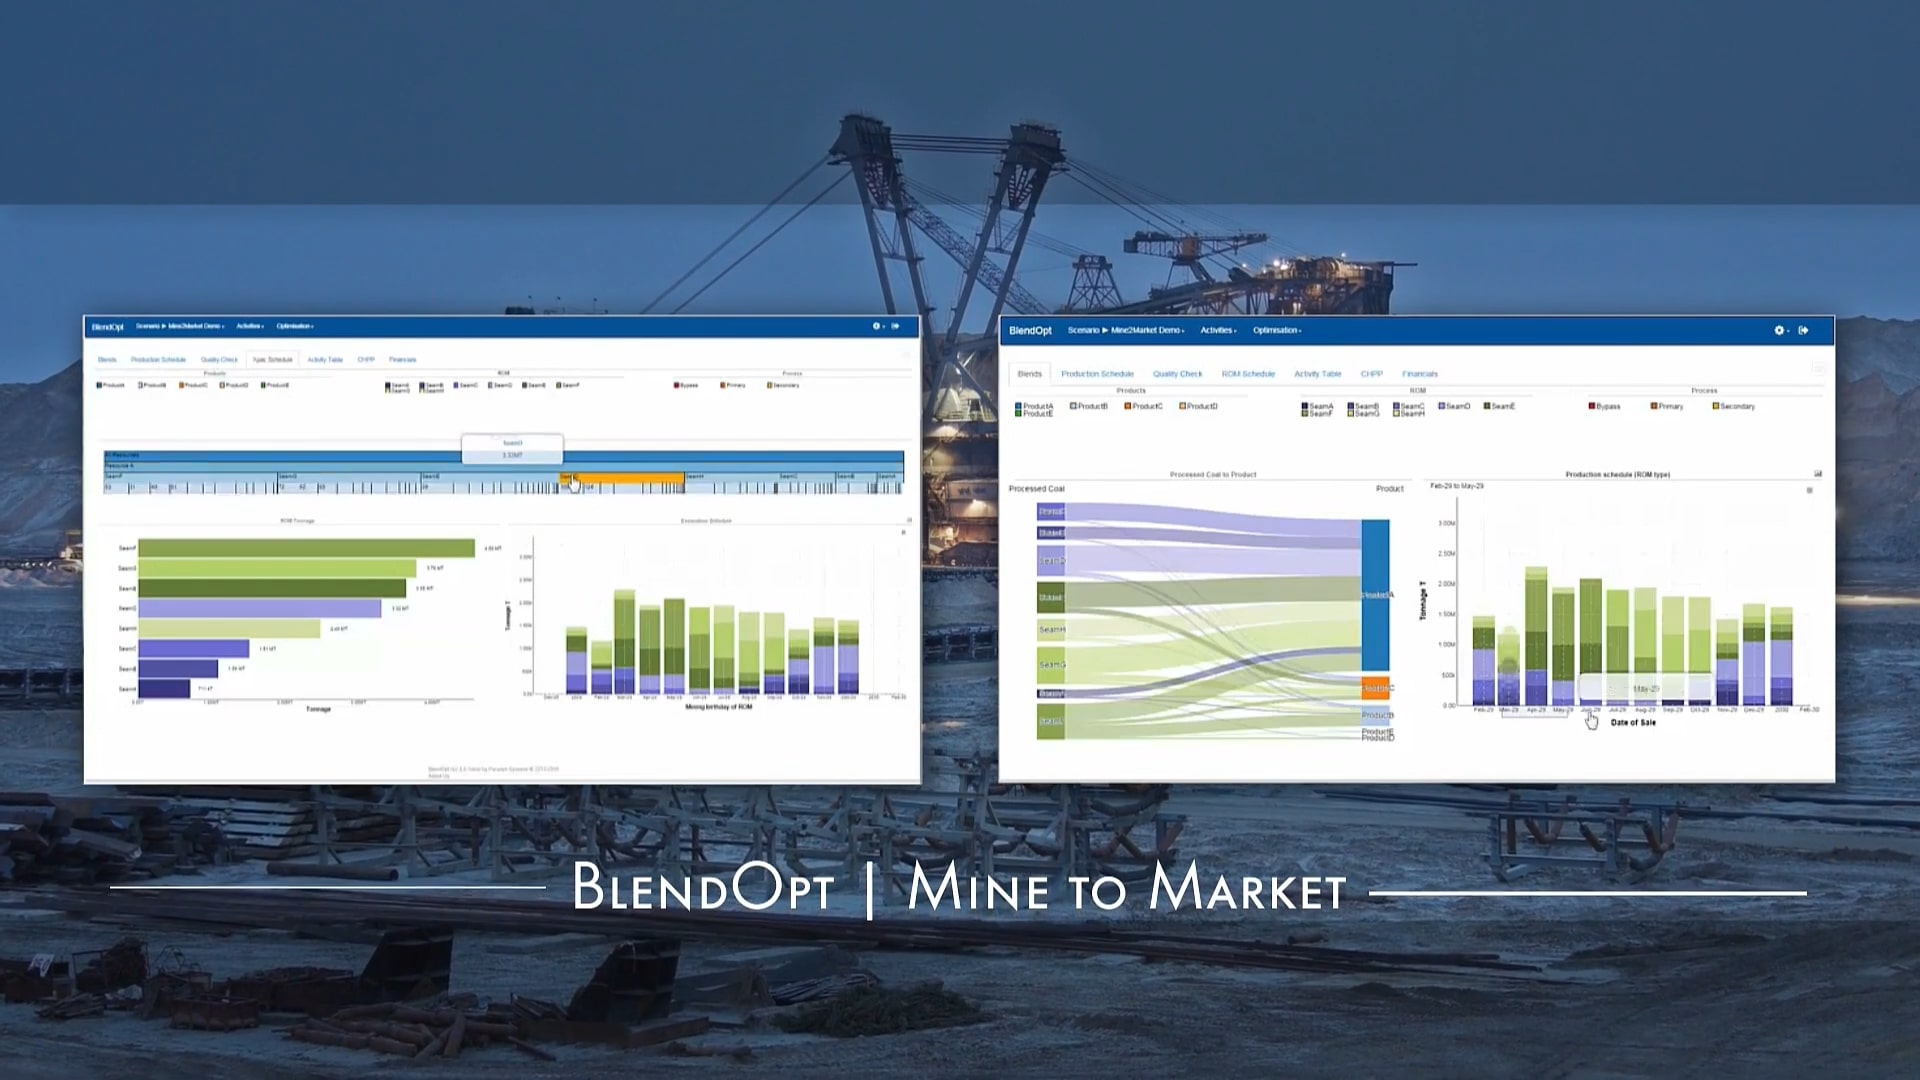 Screenshot of the BlendOpt overview video title screen with the words 'BlendOpt | Mine to Market'